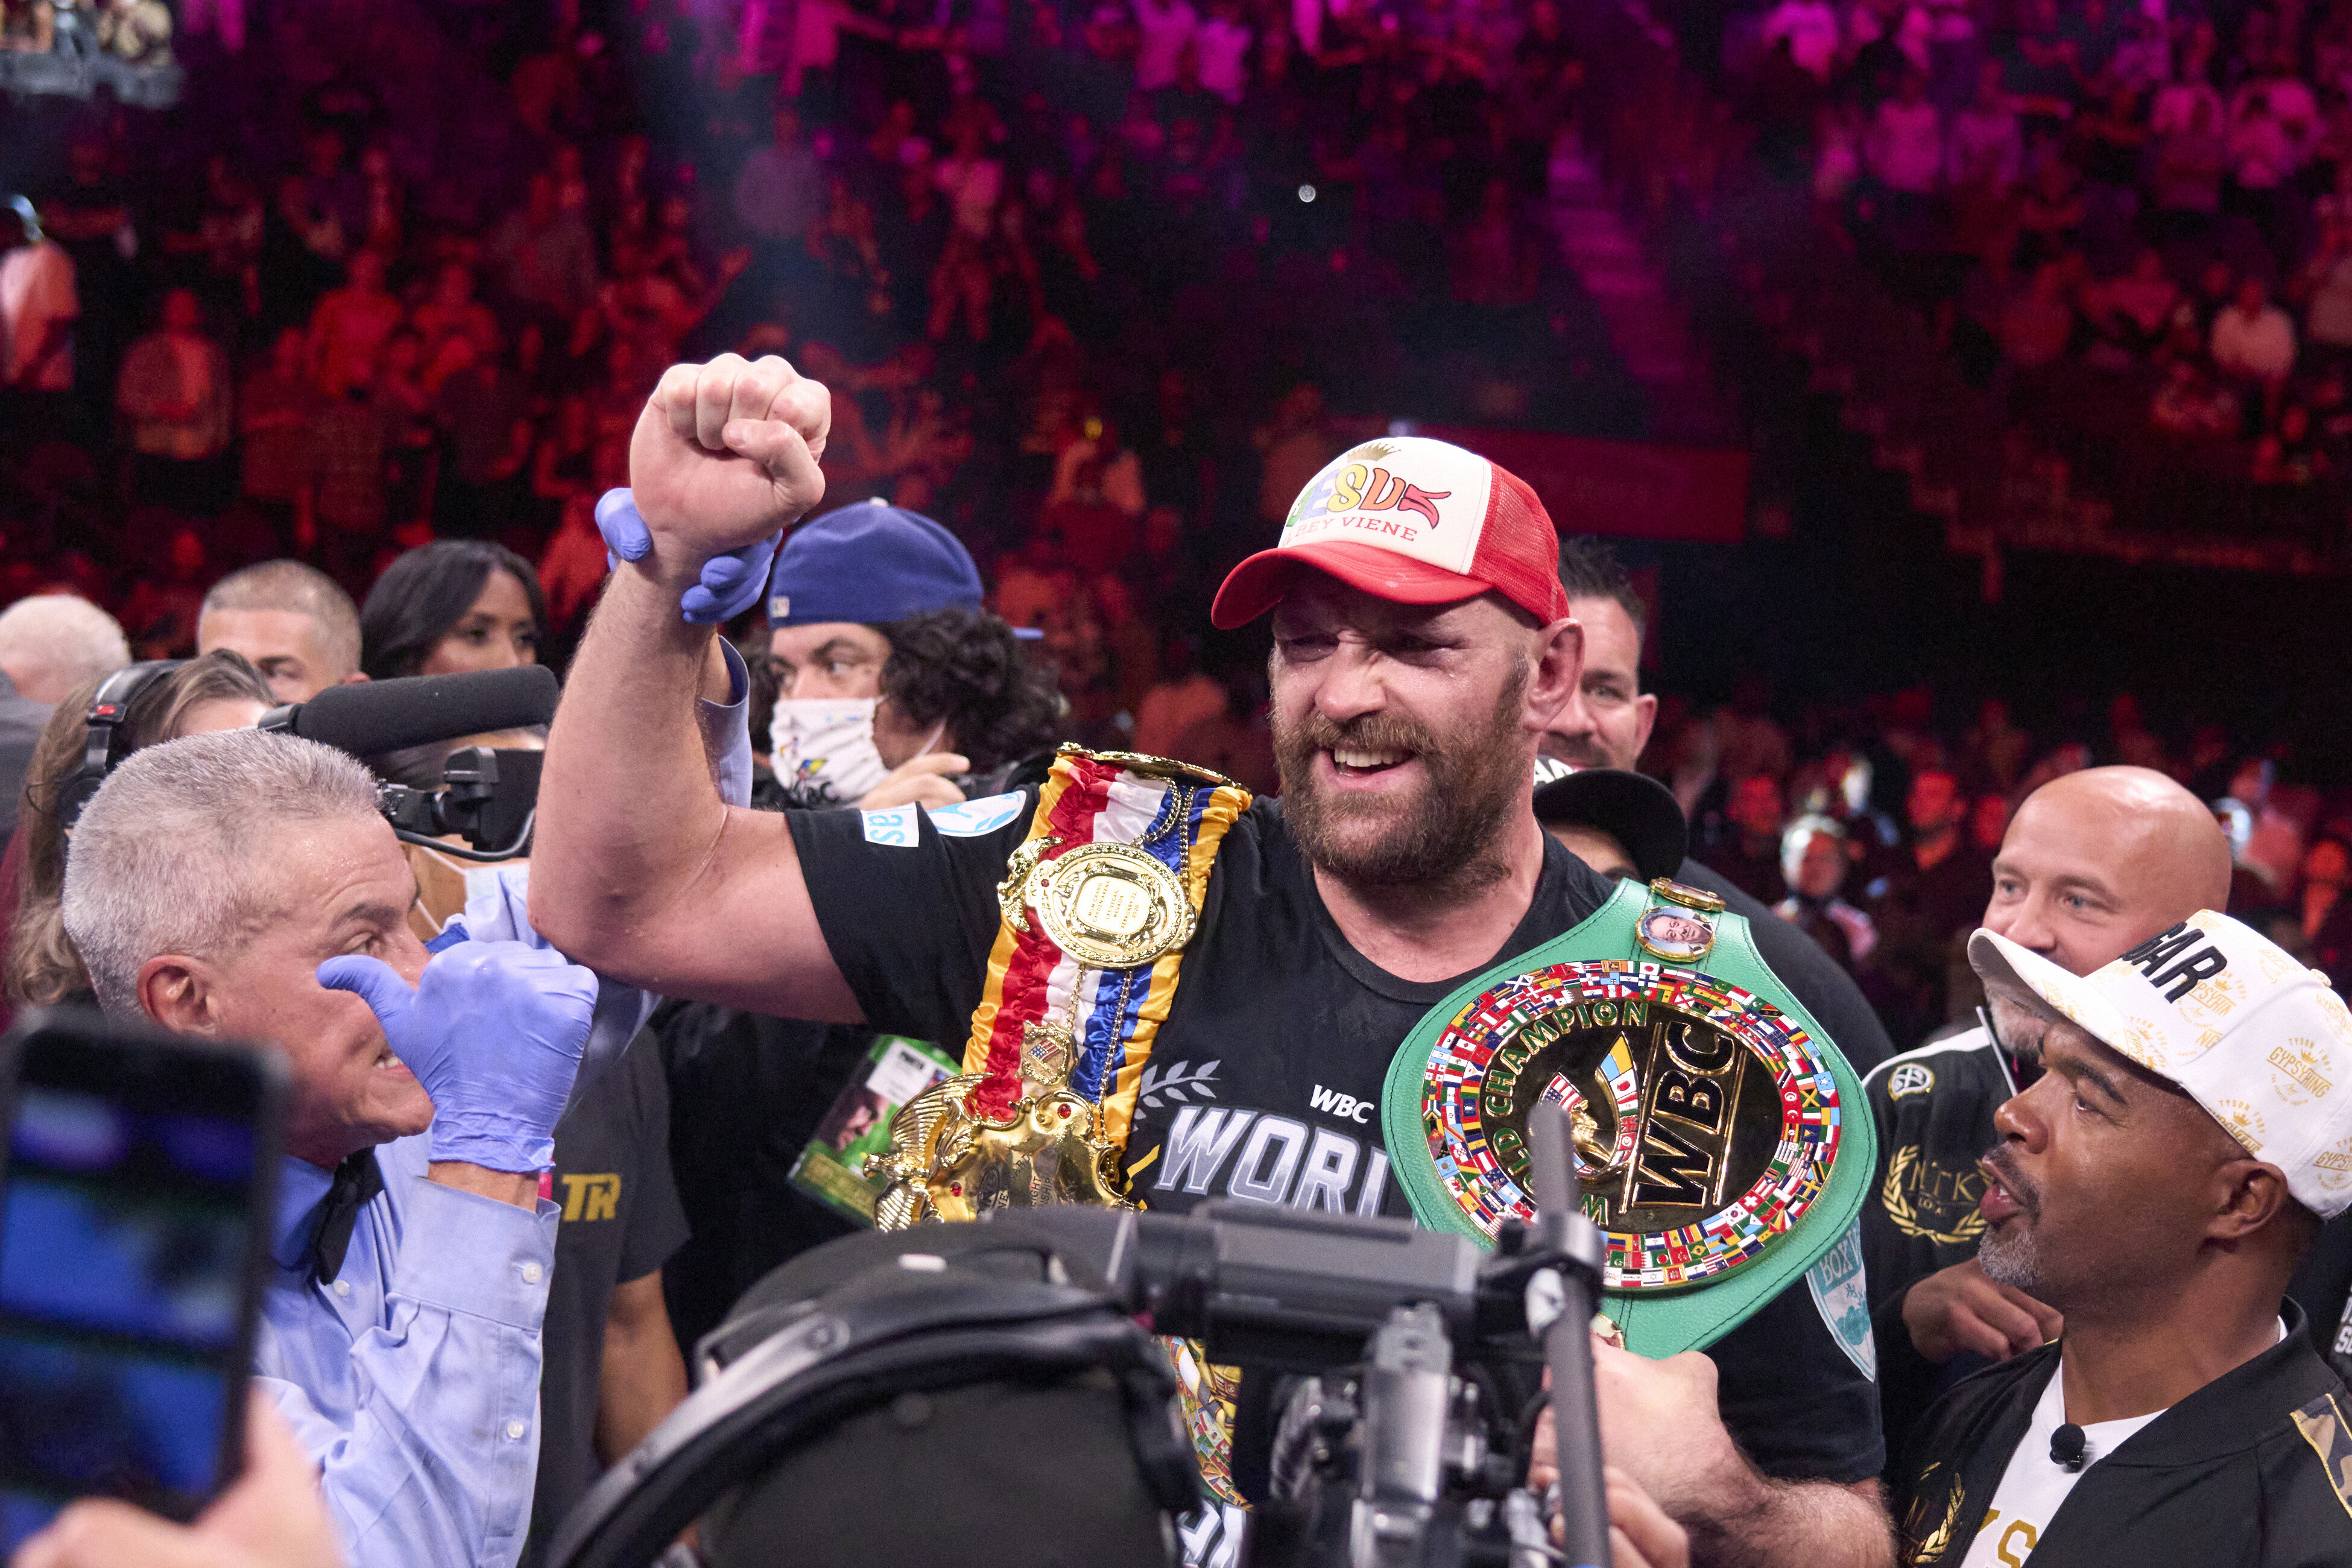 Tyson Fury: 'He's not the greatest,' says Dillian Whyte as he reviews the state of boxing's heavyweight division